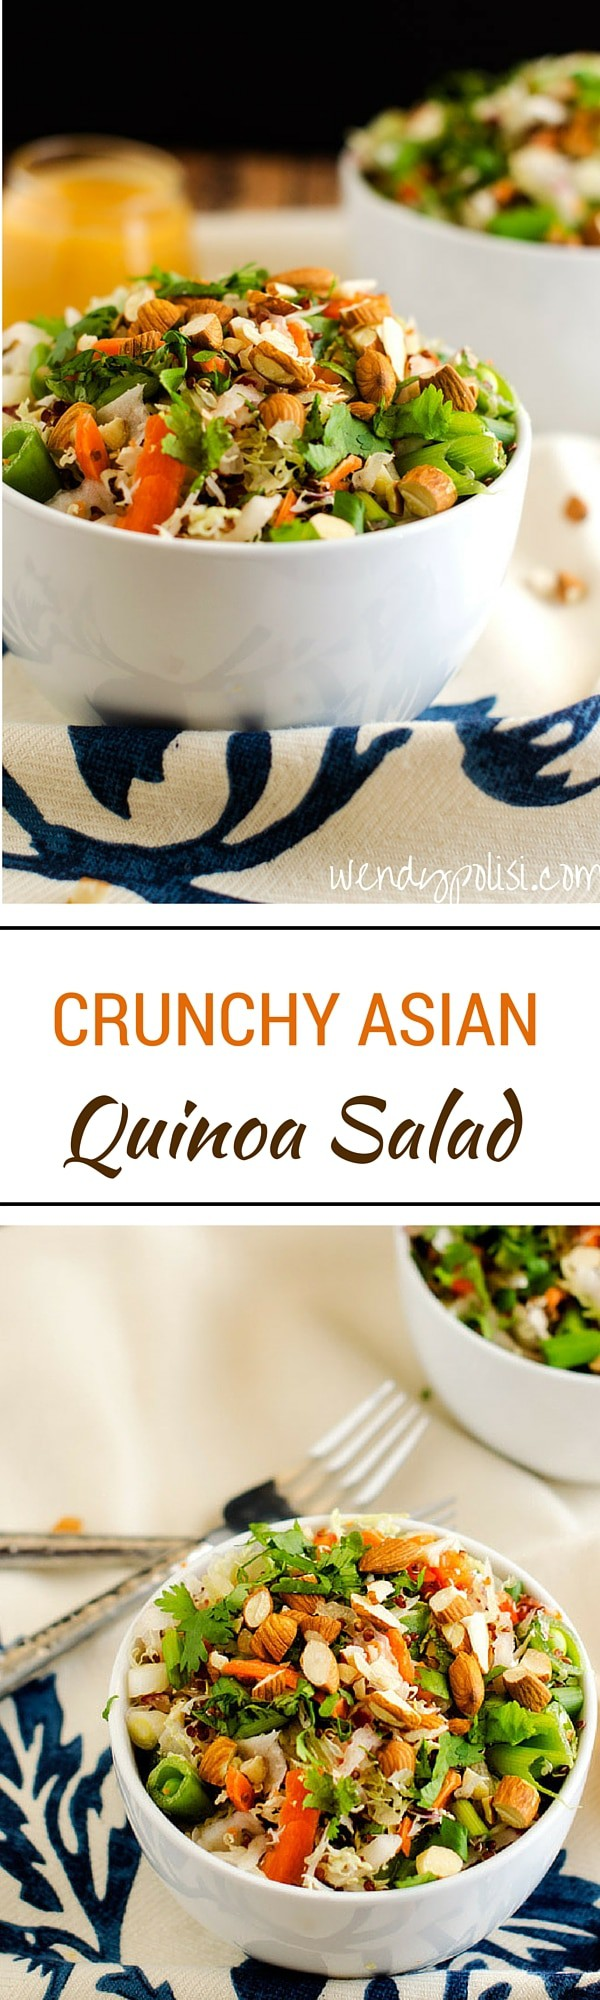 Crunchy Asian Quinoa Salad